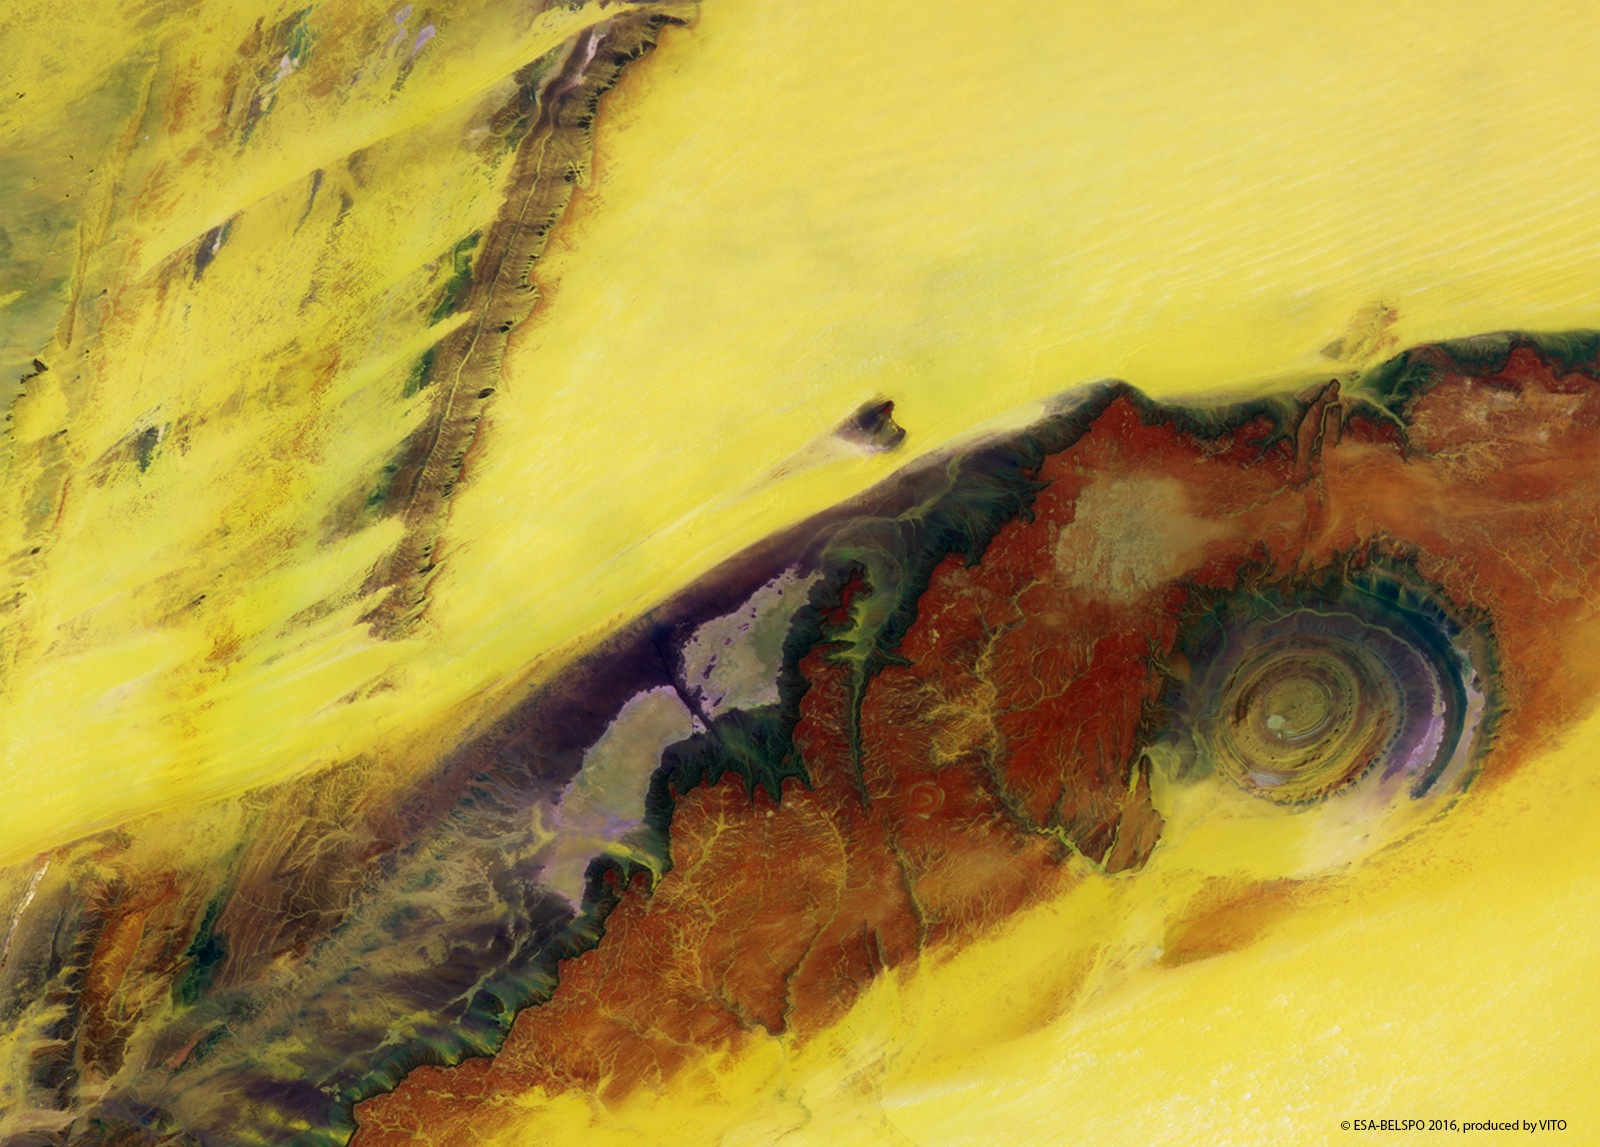 Eye of the Sahara, Mauritania